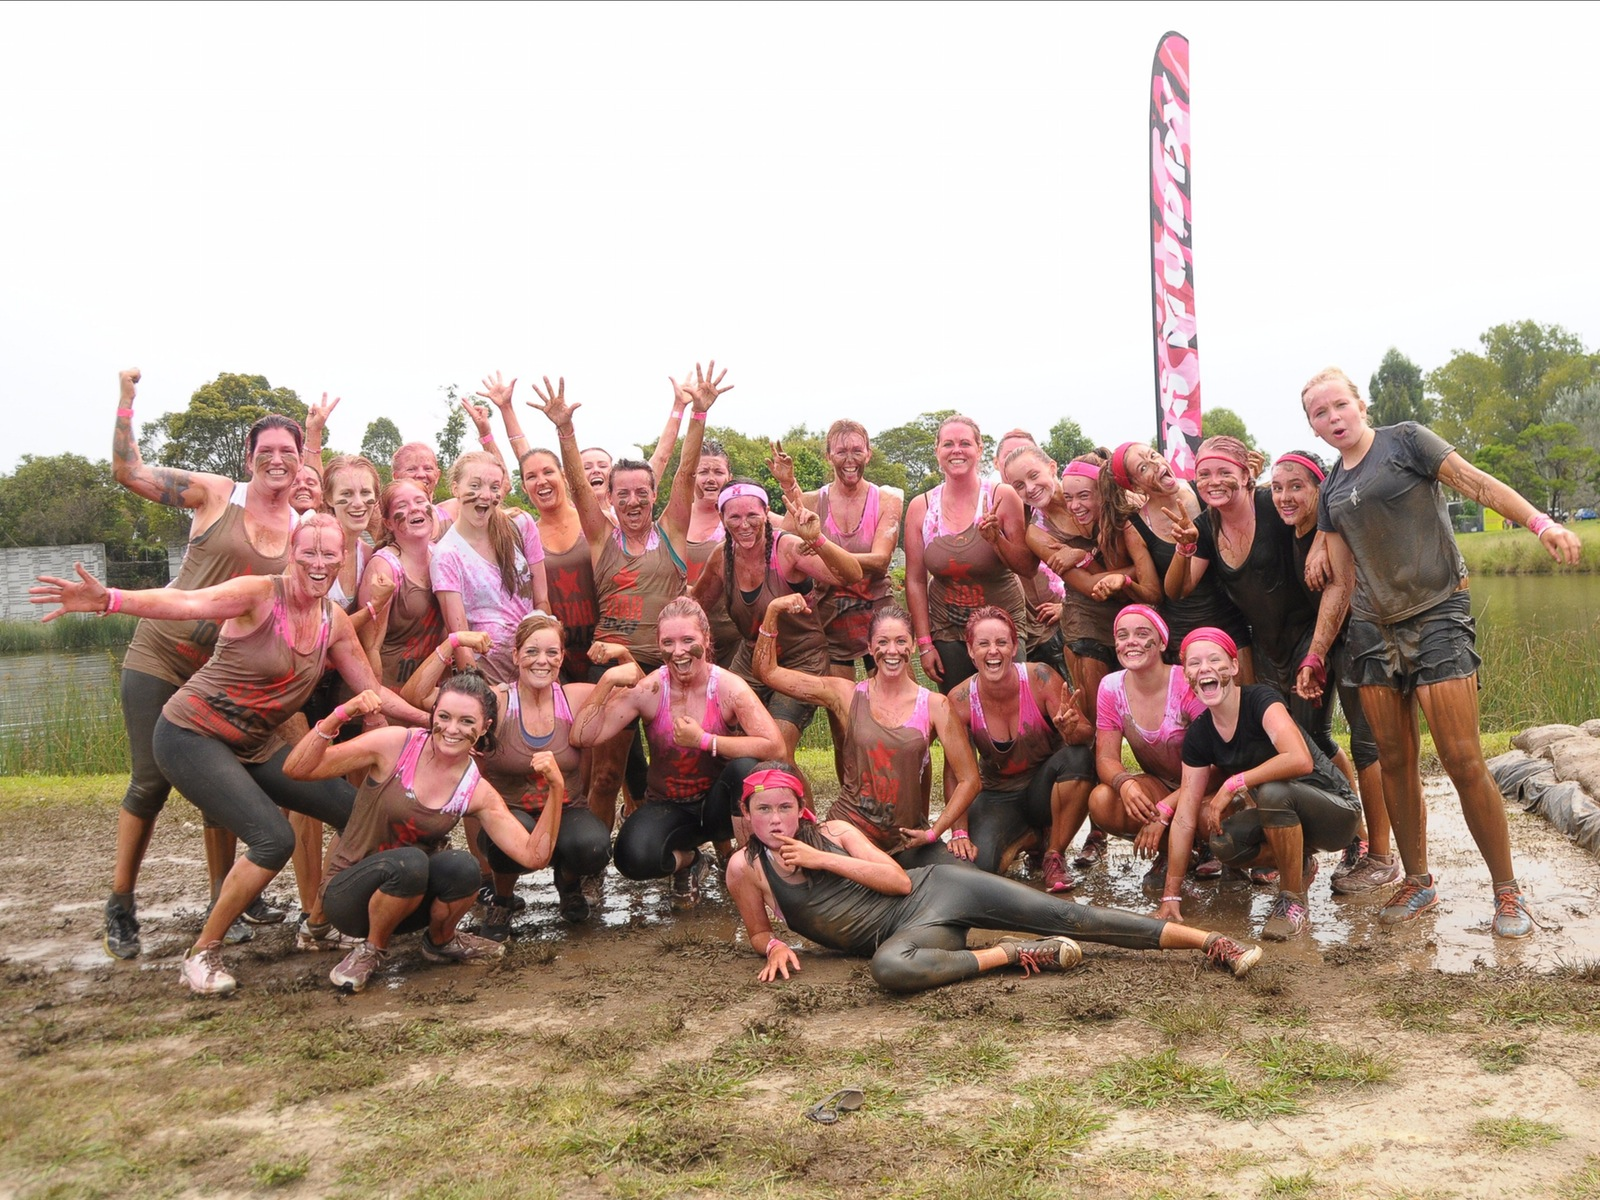 Miss Muddy fun